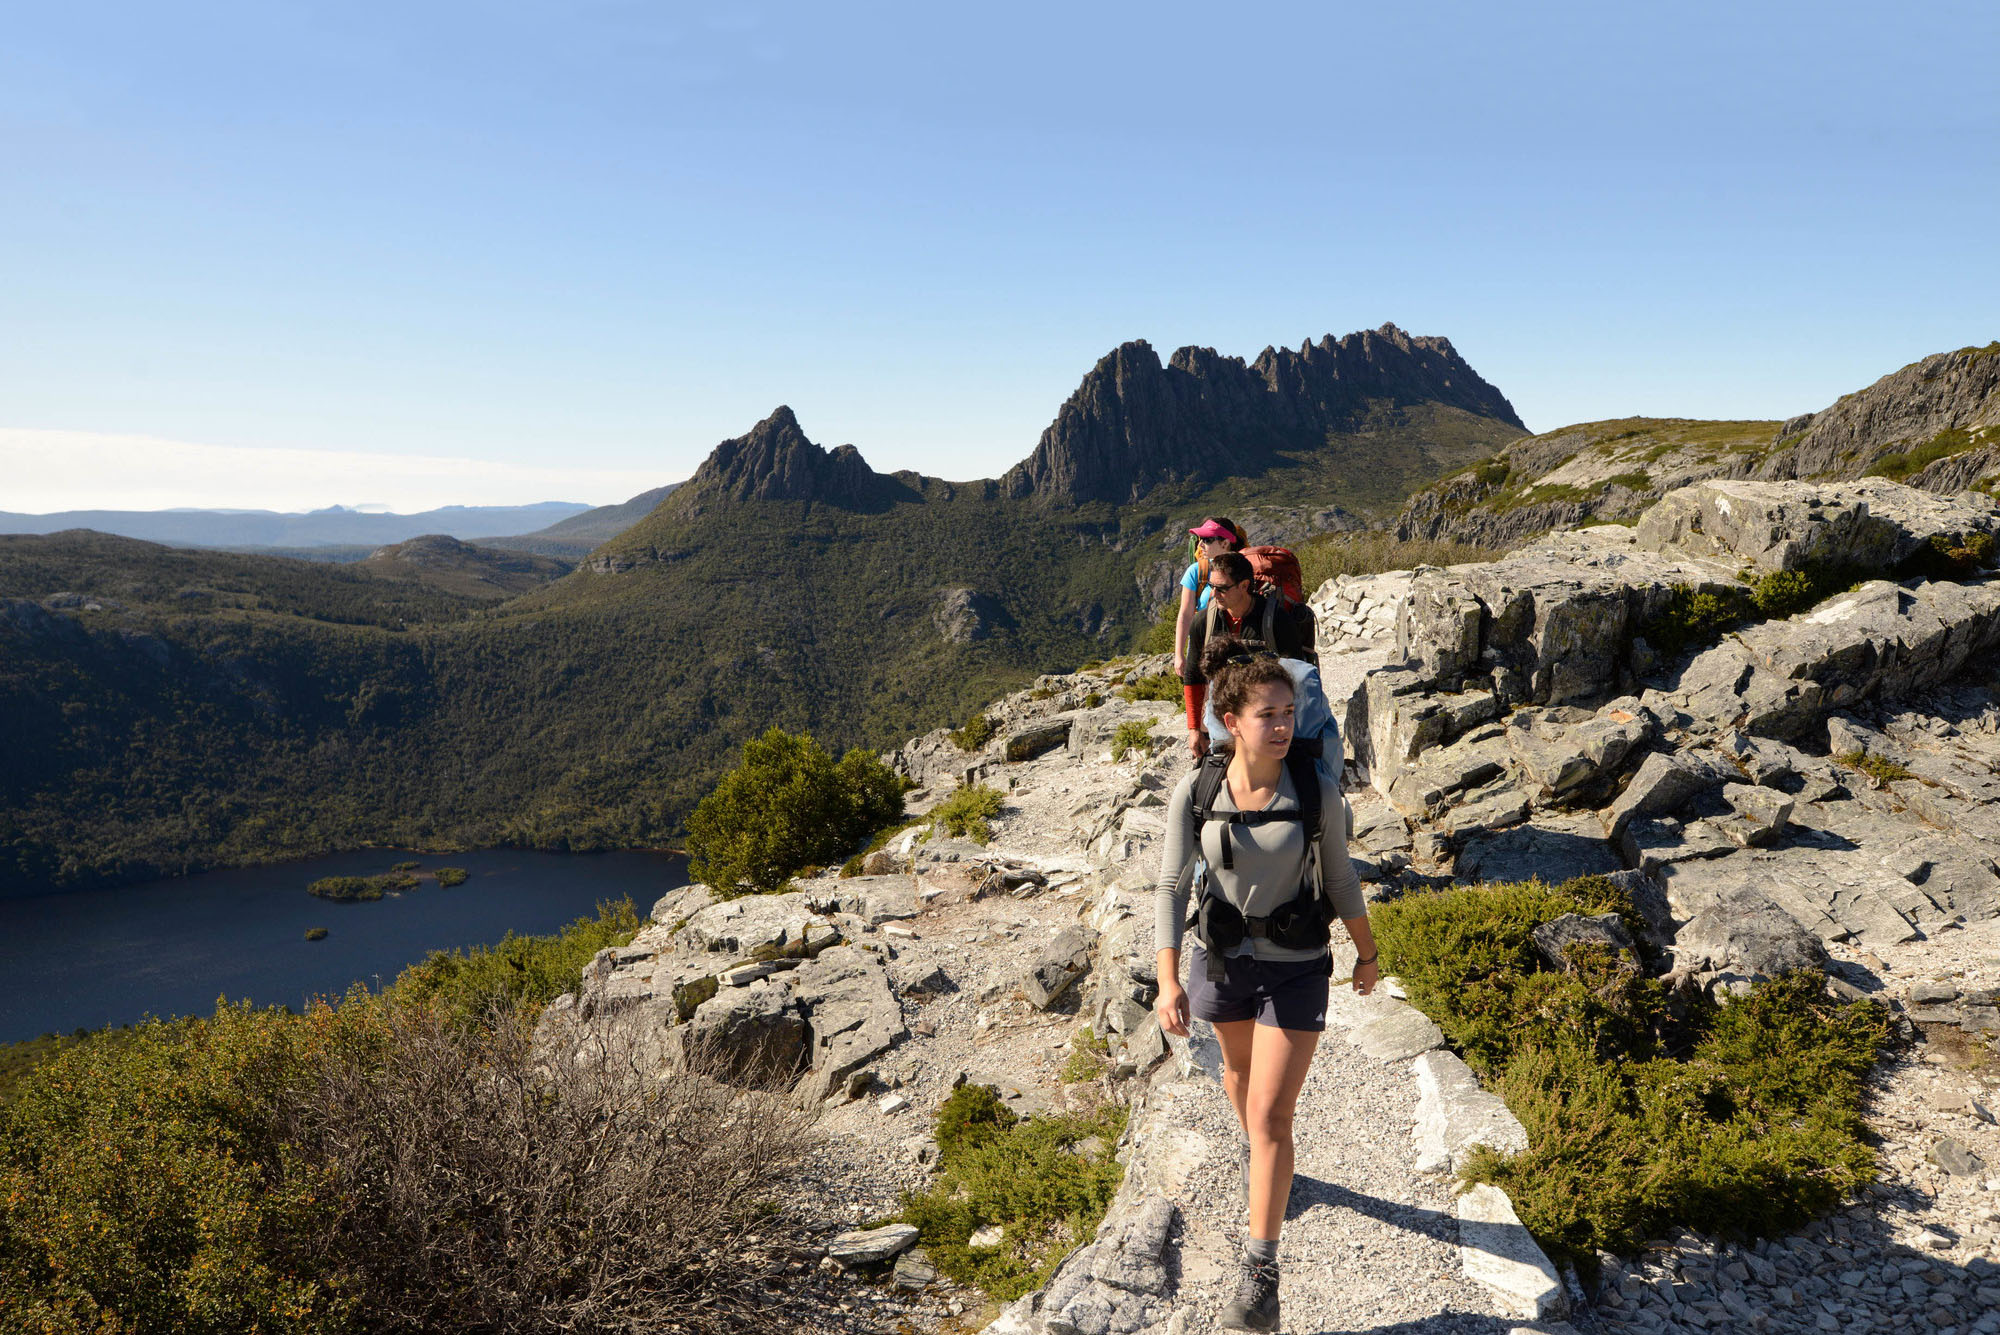 Walkers at Marions Lookout, Cradle Mountain.